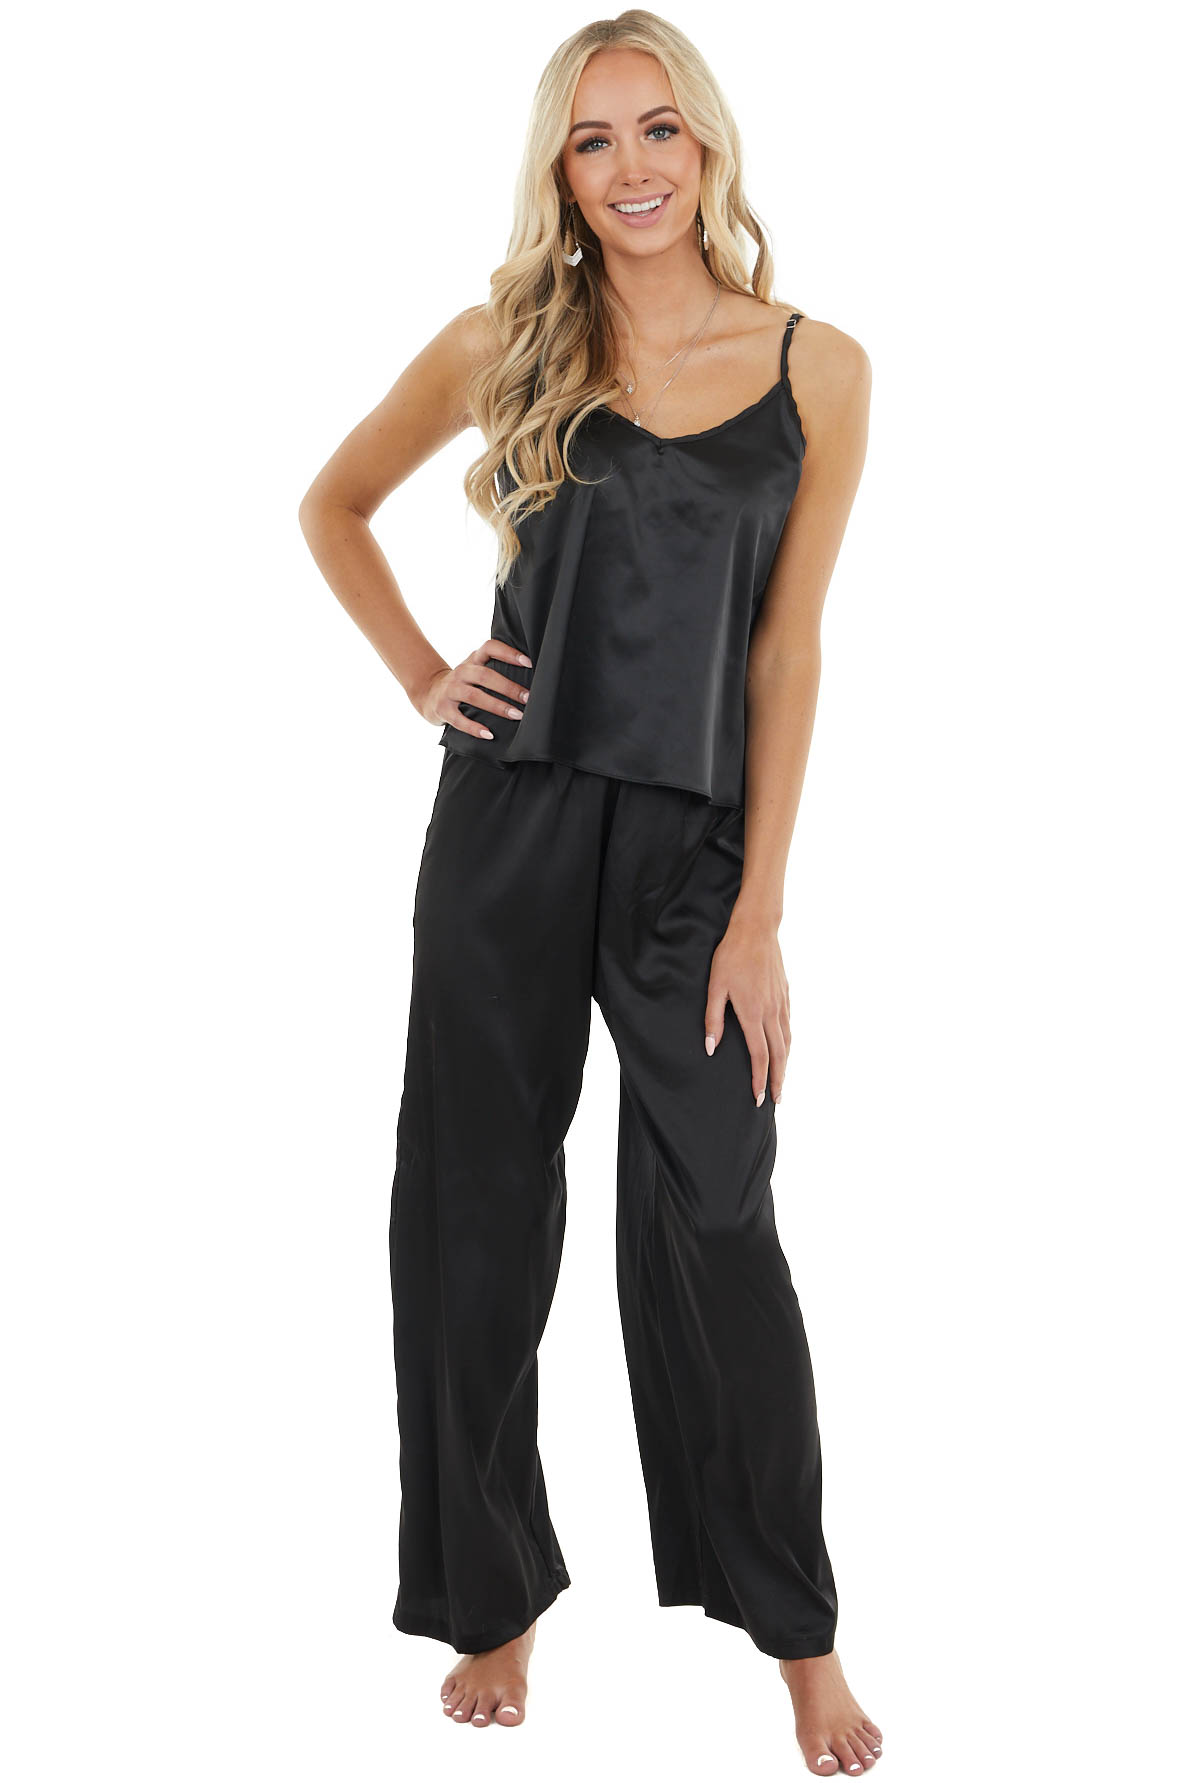 Black Silky Camisole and Flare Bottom Pant Pajama Set